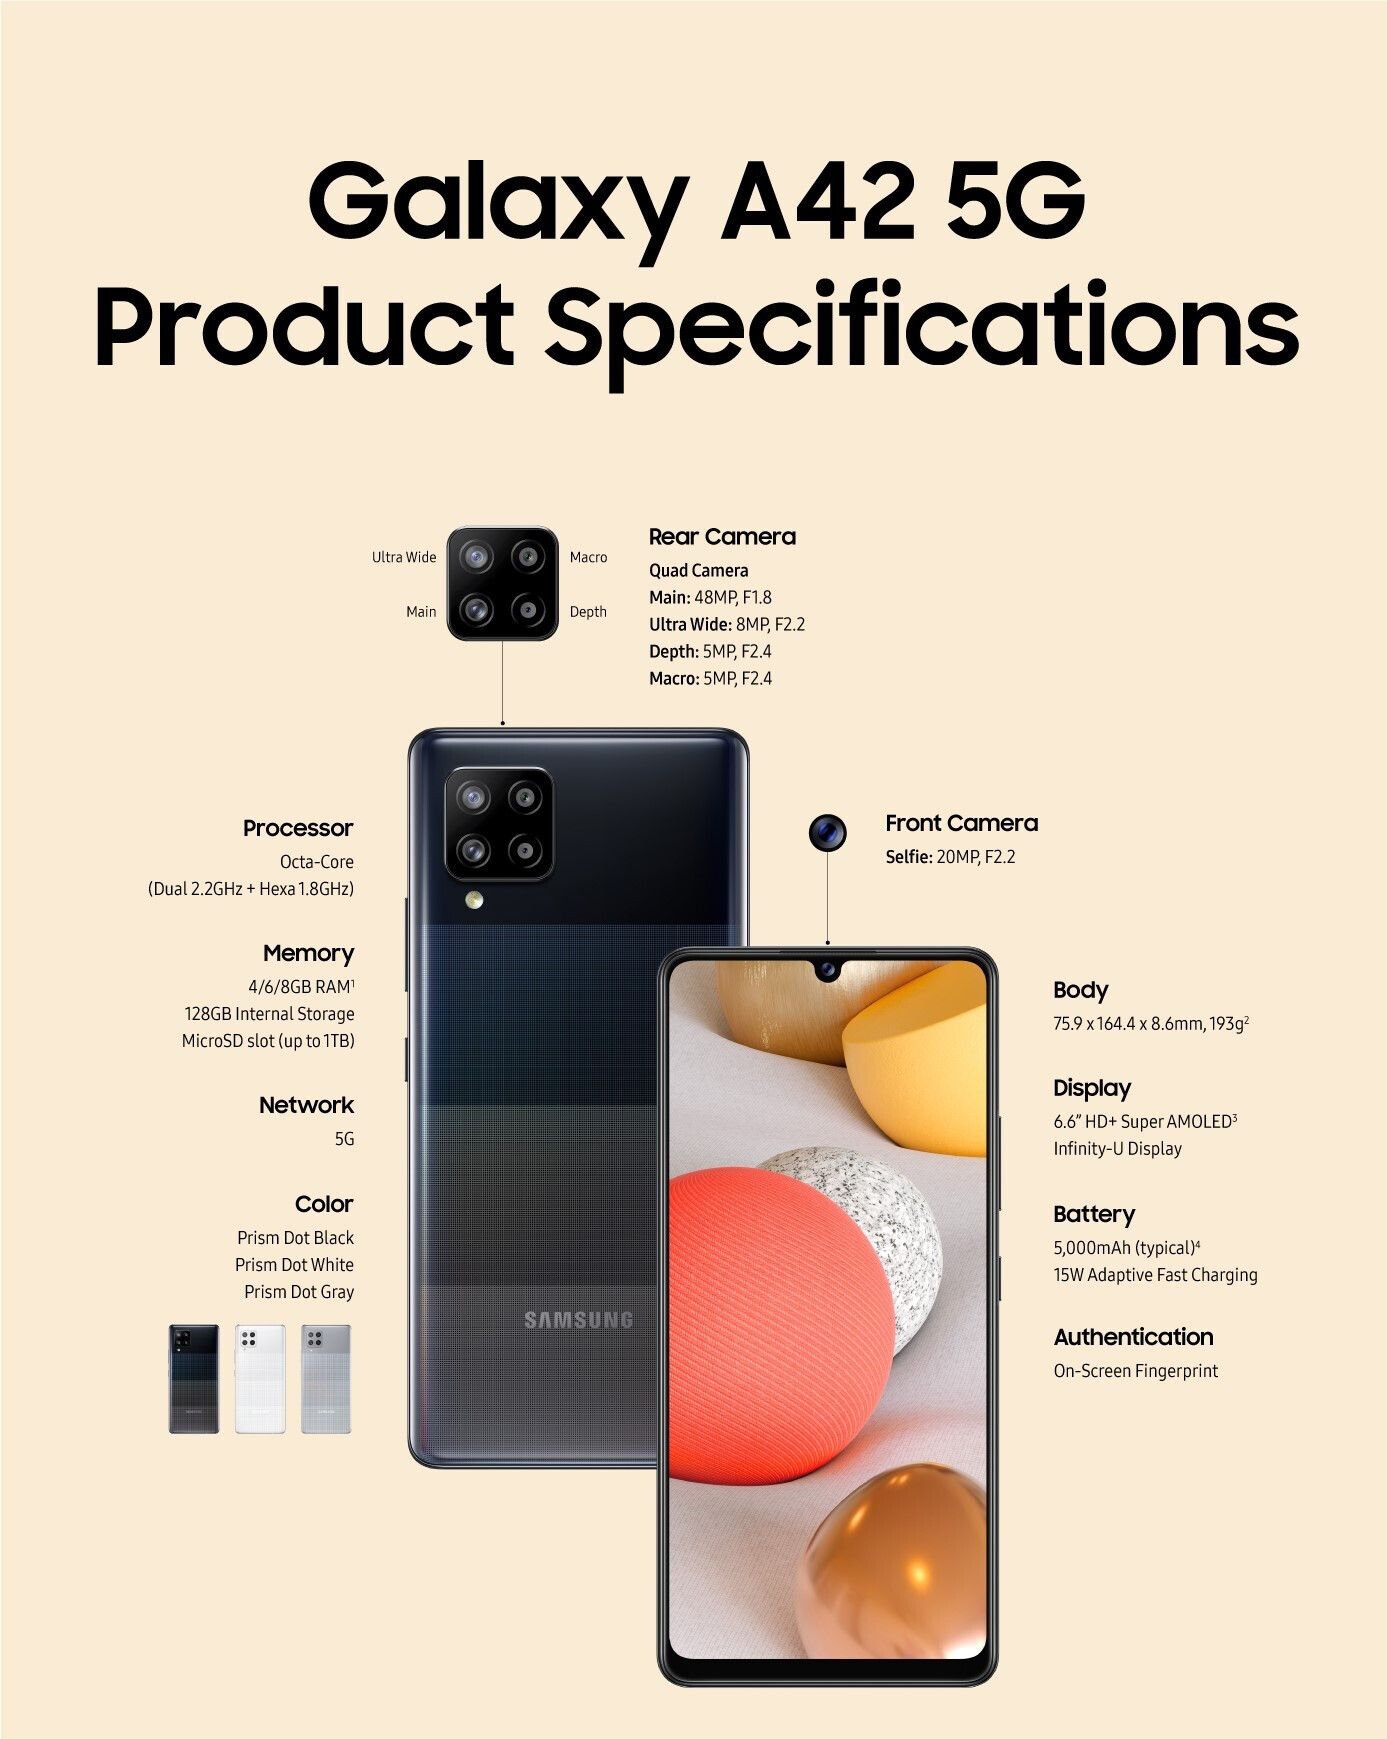 Samsung Galaxy A42 5G Specifications - We finally know everything about Samsung's cheapest 5G smartphone, just in time for its release